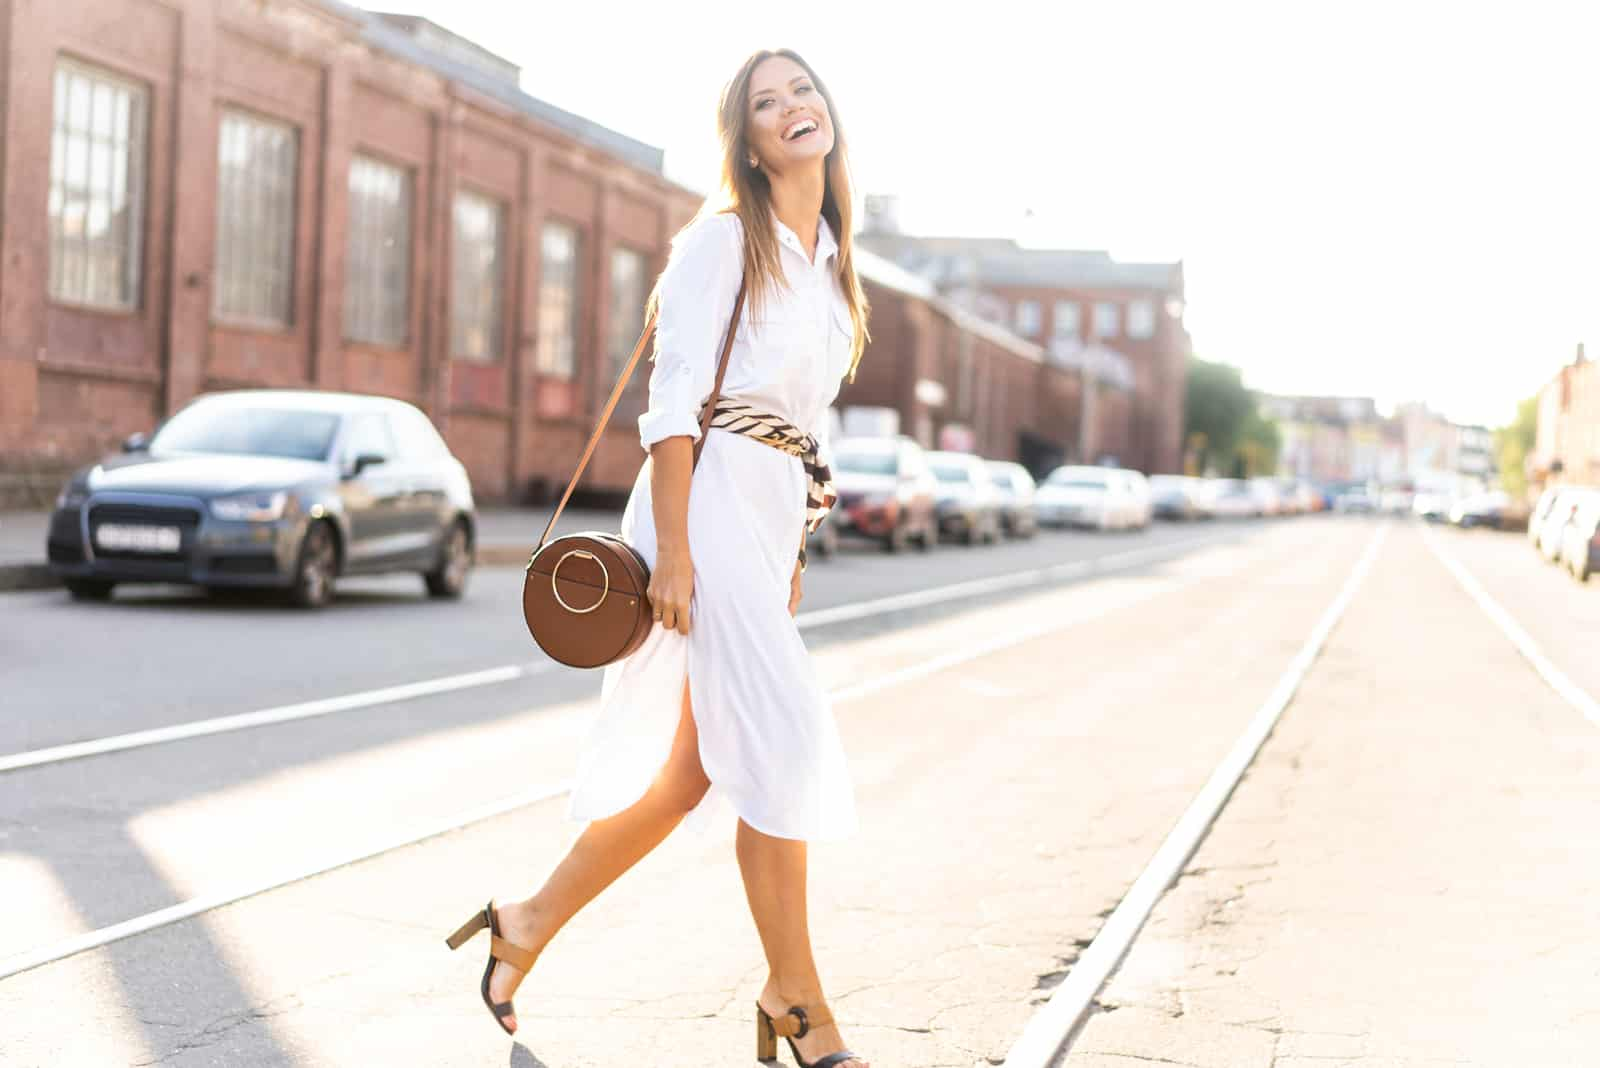 a woman with long brown hair in a white dress walks down the street